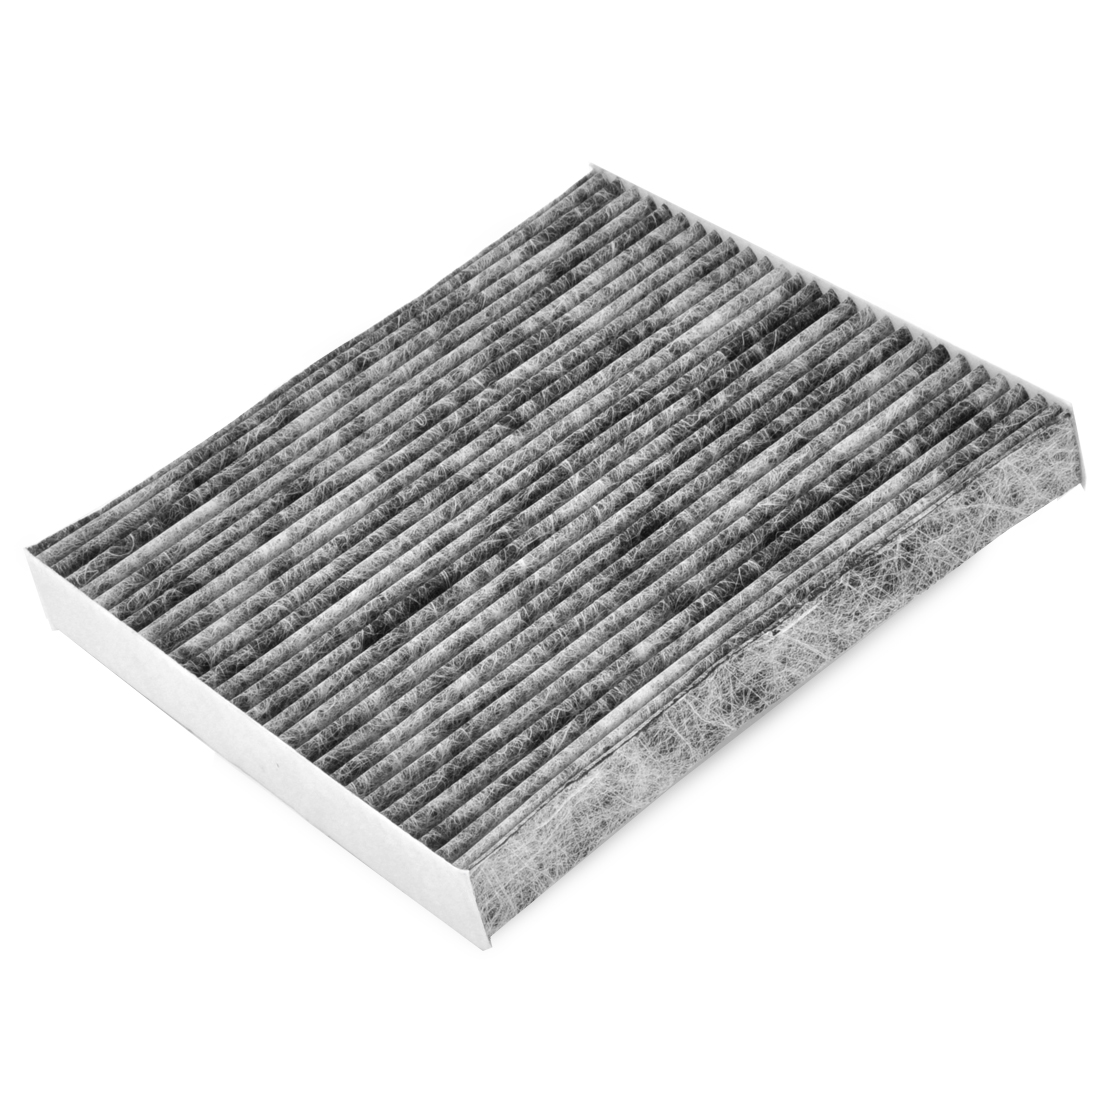 Beler new carbon fiber cabin air filter 87139 07010 87139 yzz10 87139 06040